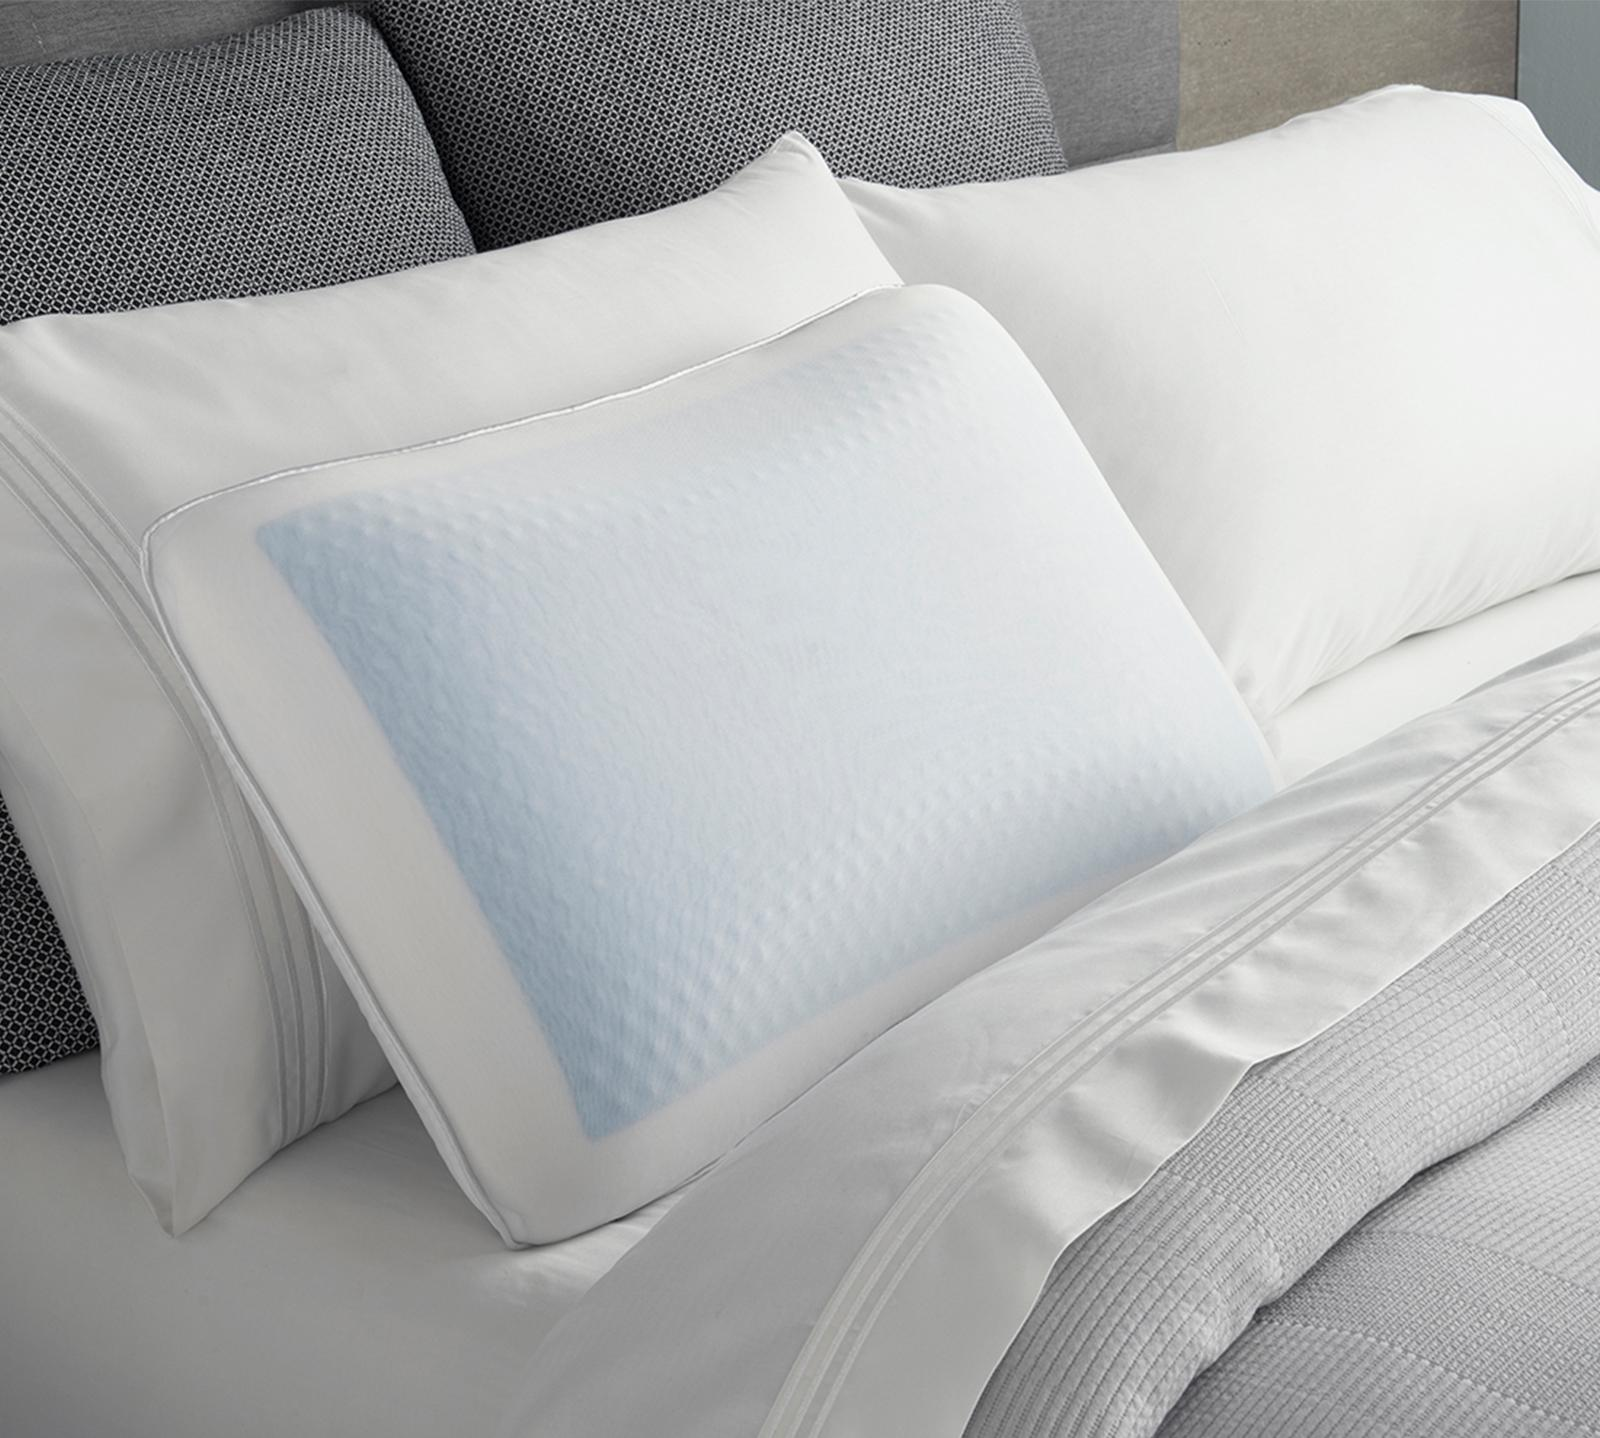 SUB-0°® Gel-egant Reversible Pillow